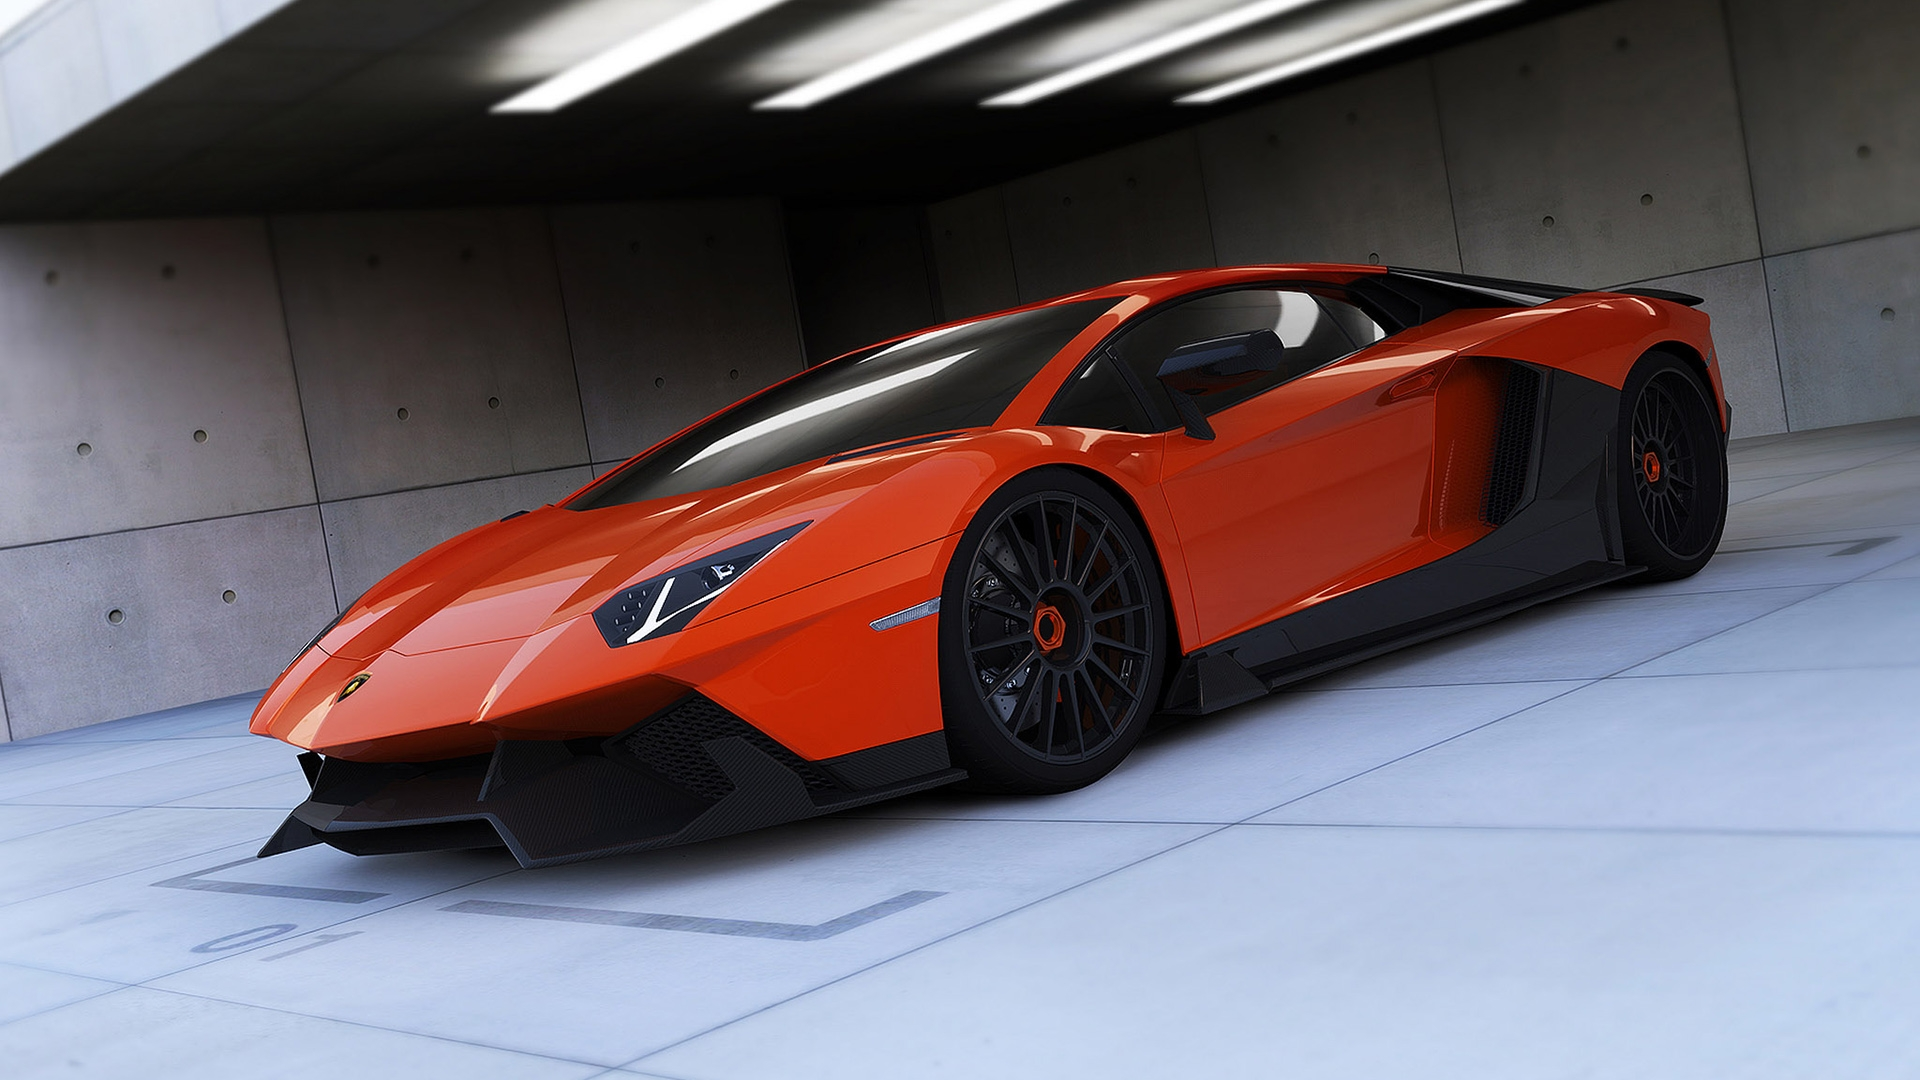 Lamborghini Aventador Wallpaper HD 1080p Pictures Photos 1920x1080